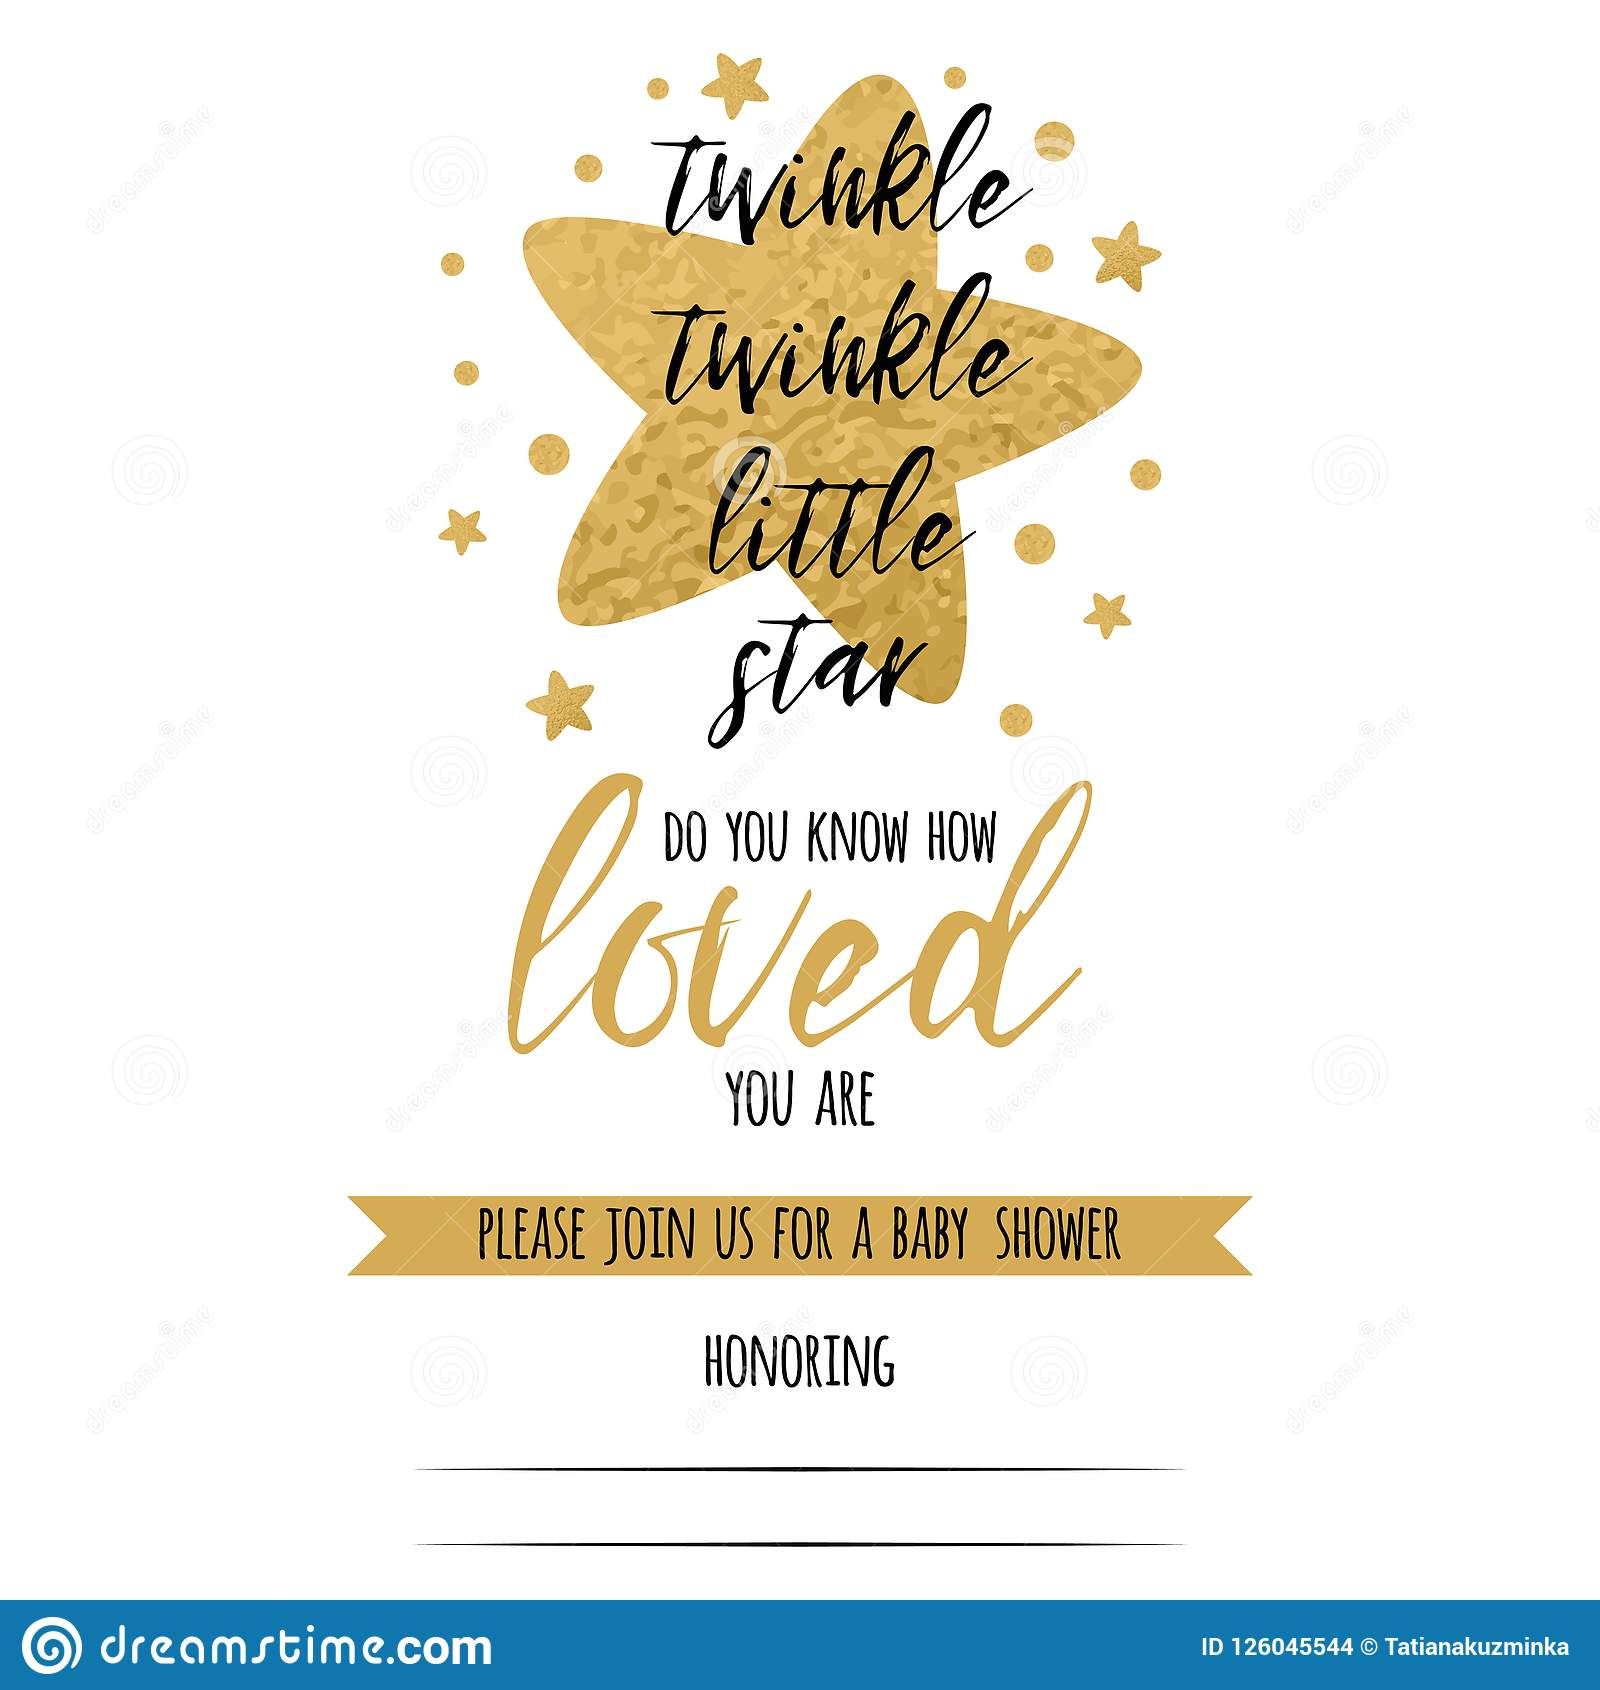 Twinkle Twinkle Little Star Text With Gold Stars For Girl Baby